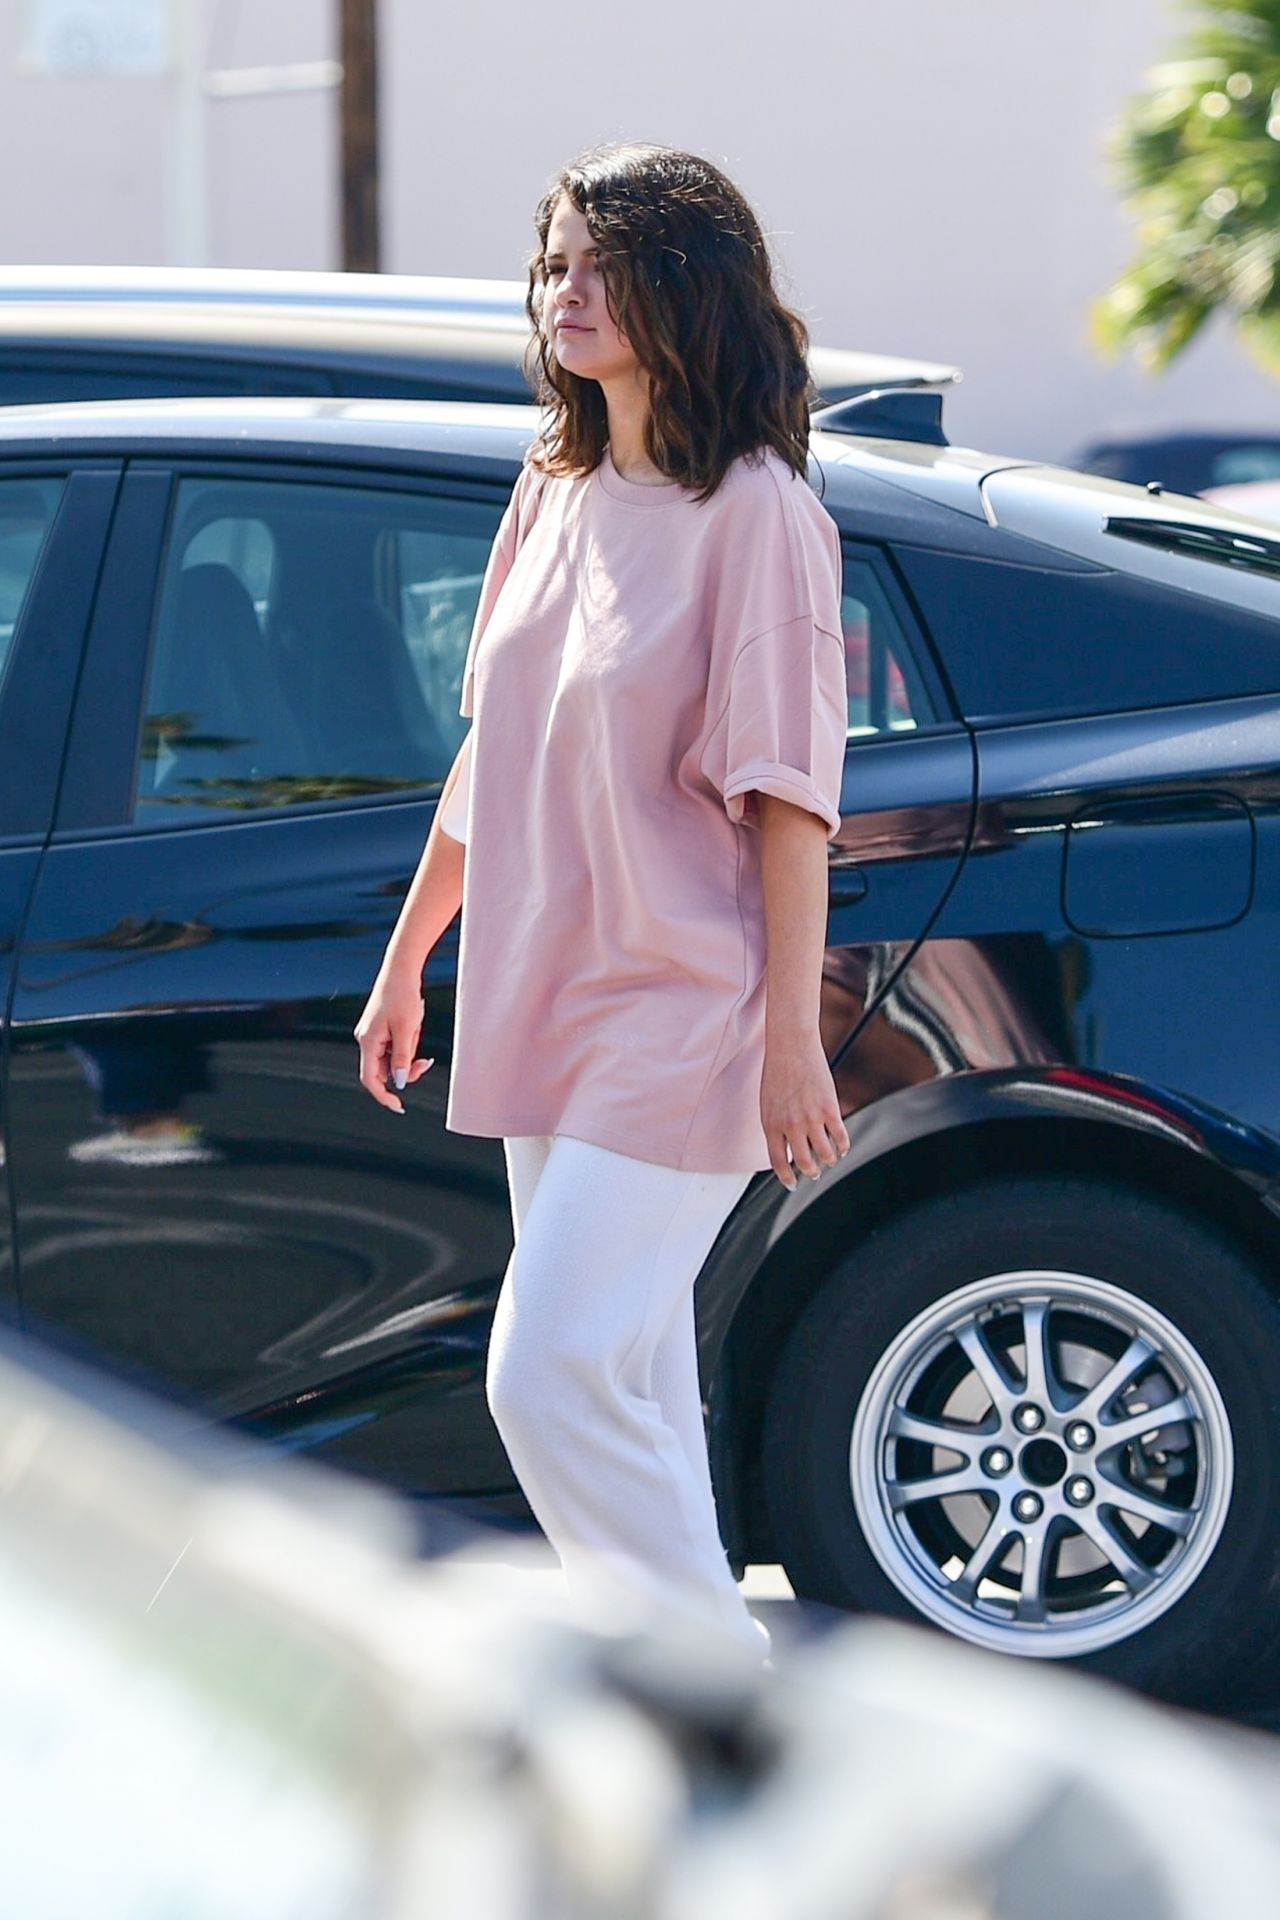 Selena Gomez Shopping In Los Angeles 07 05 2019